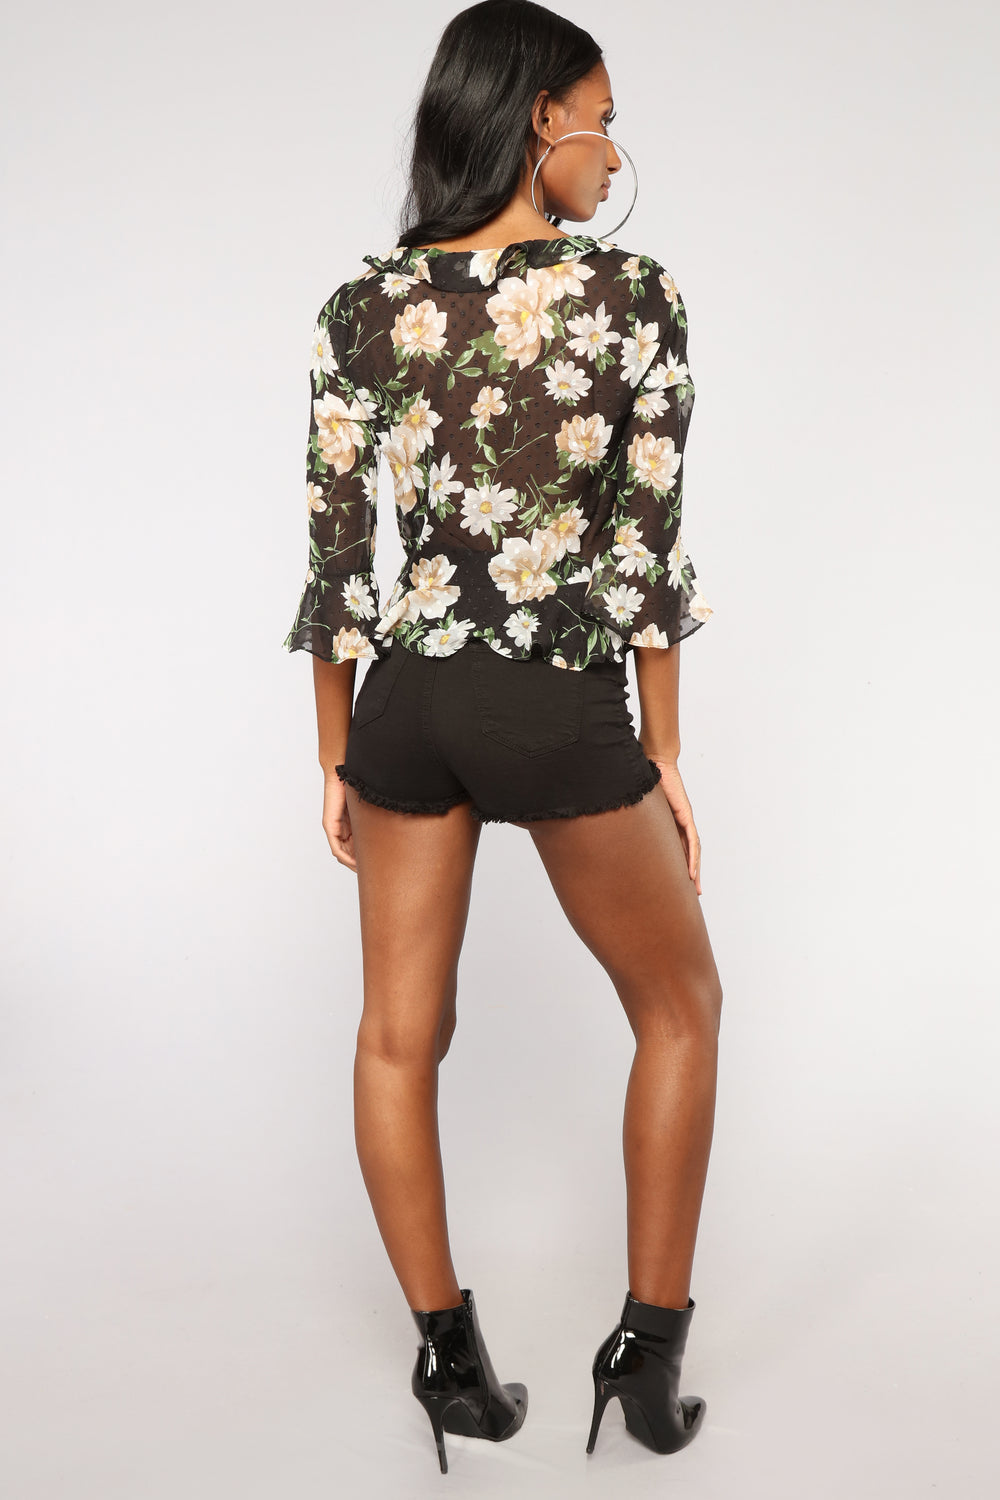 Know What I Want Floral Top - Black